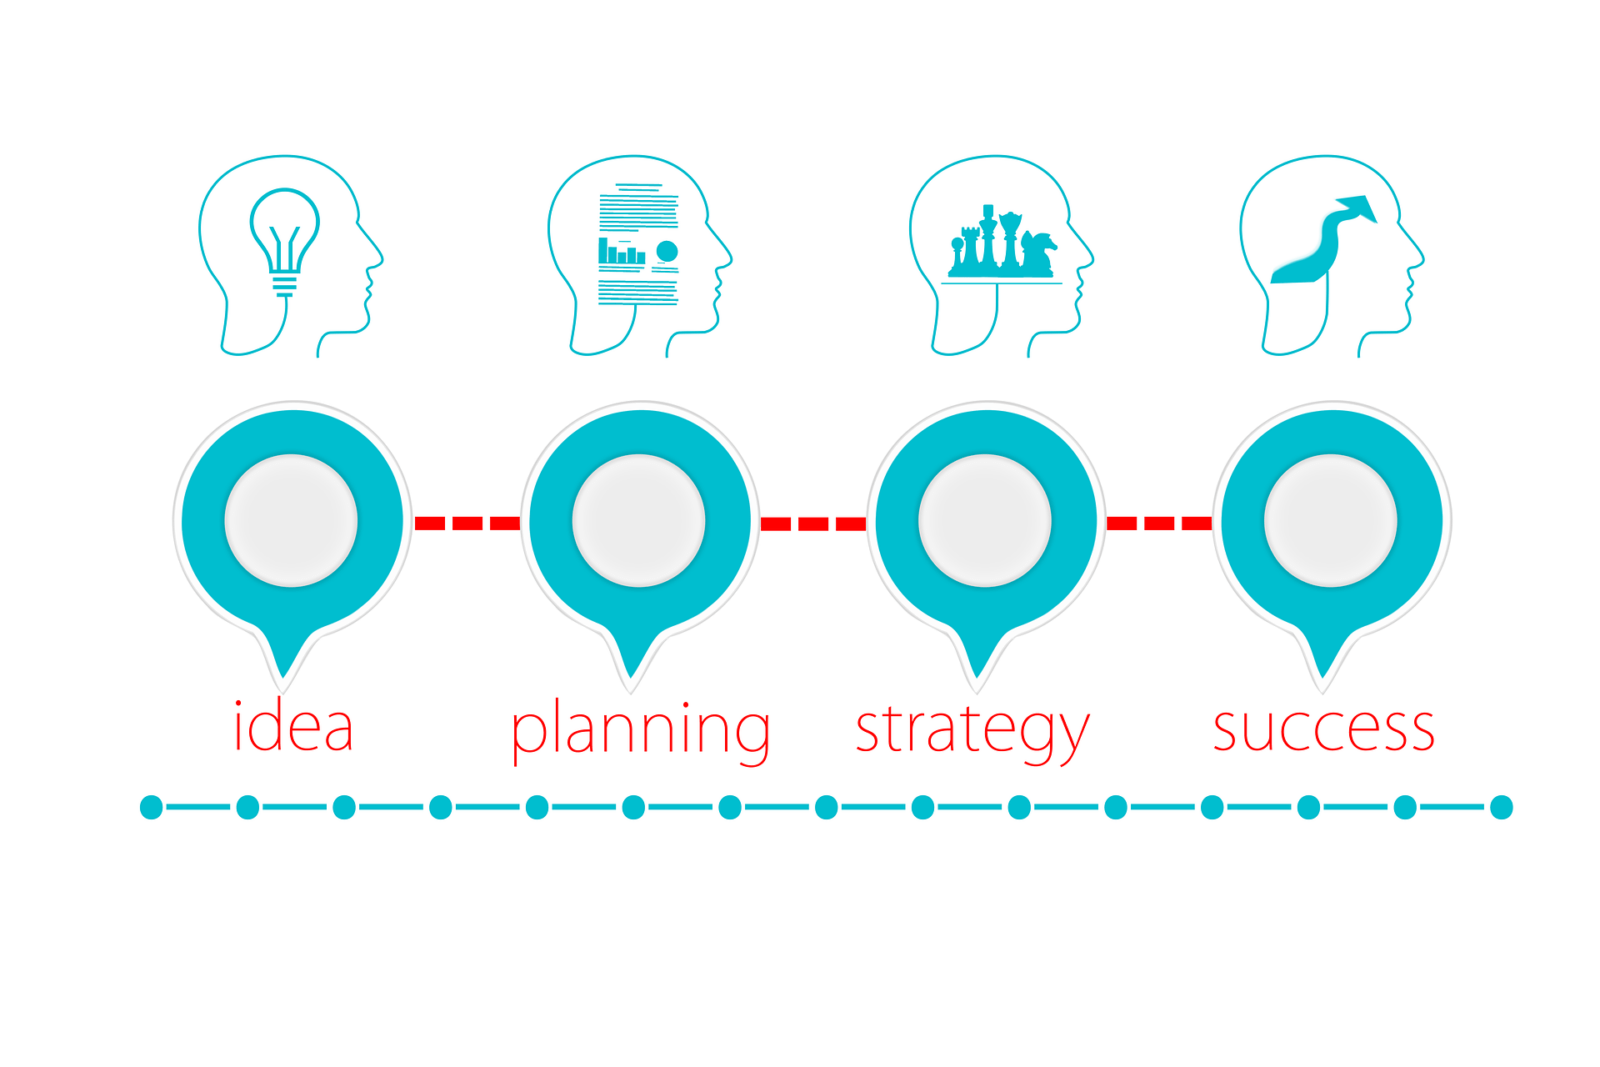 idea-planning-strategy: stratup success